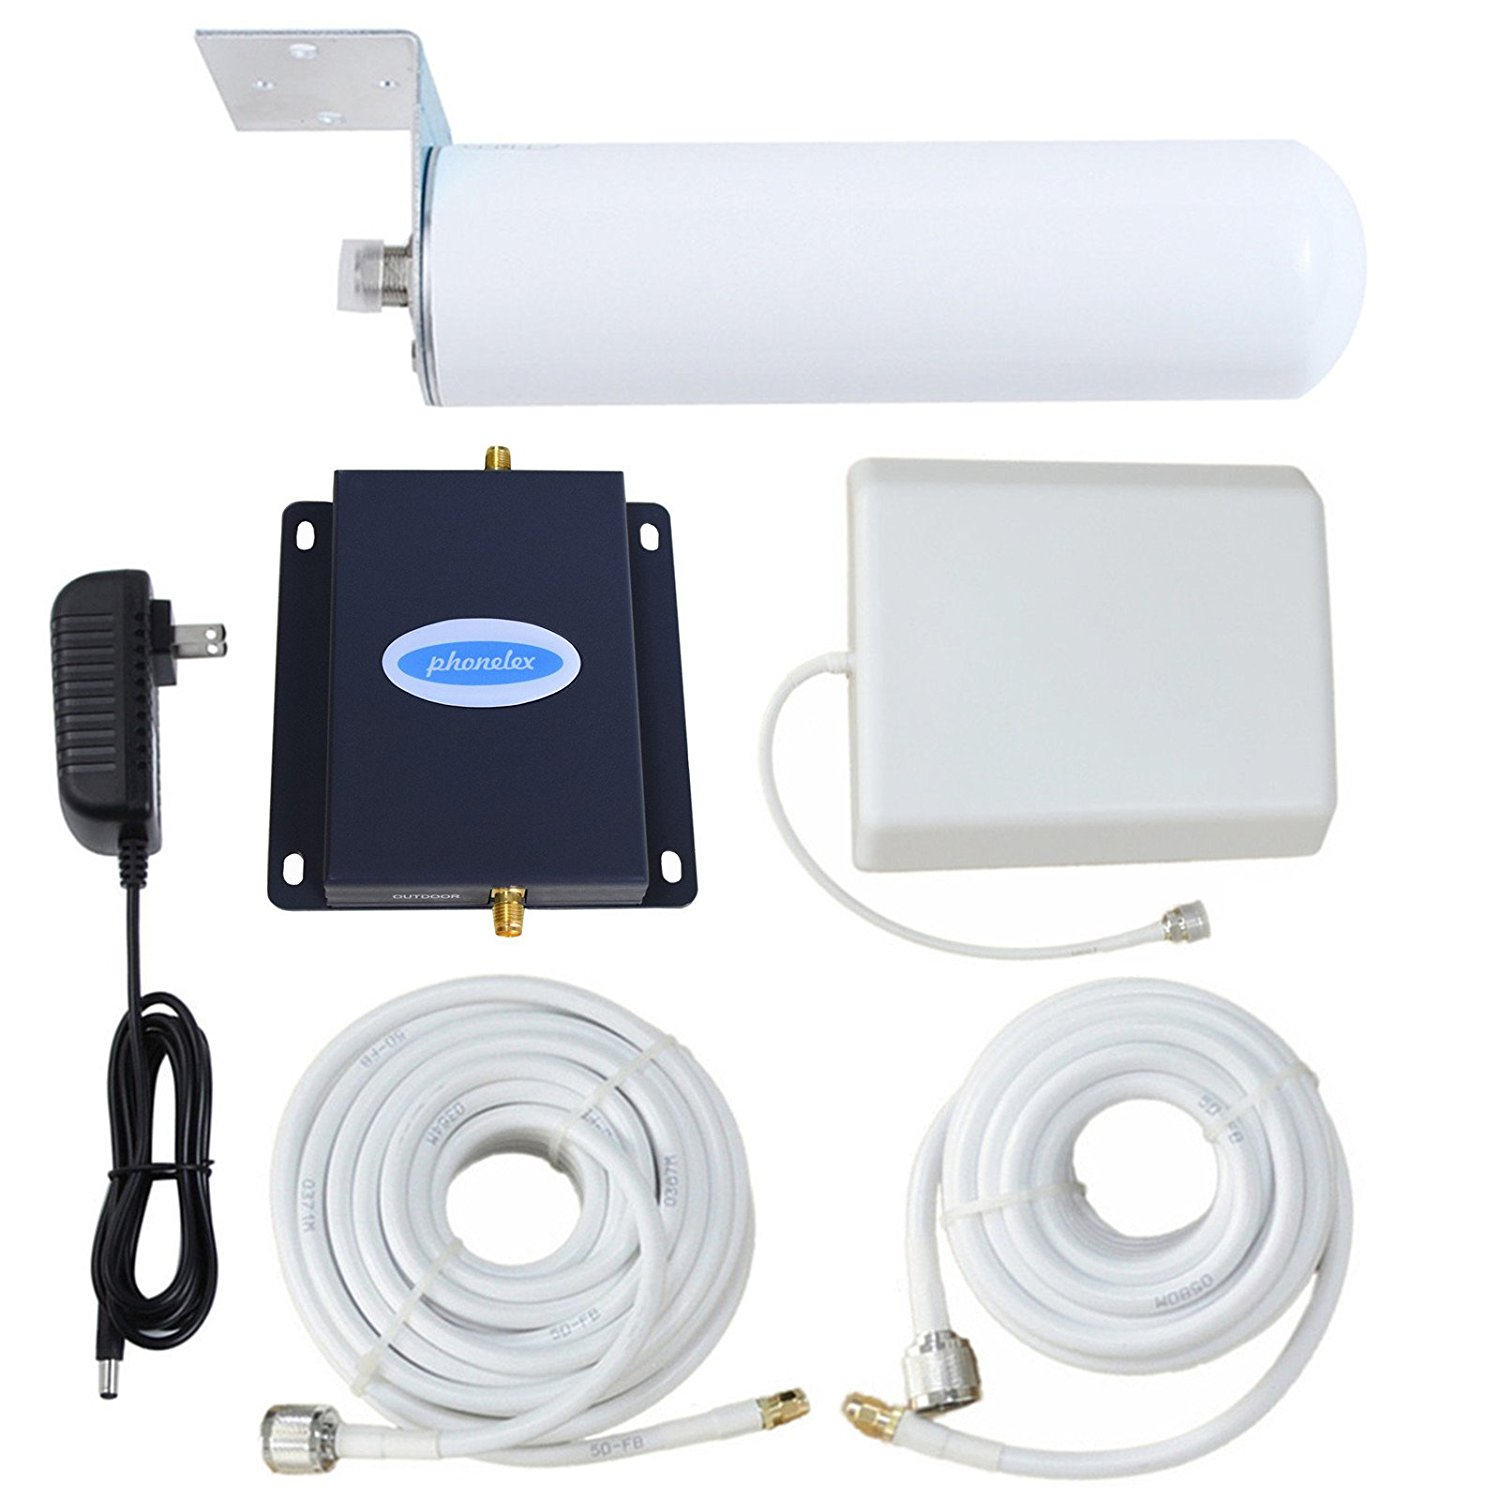 Phonelex AT&T T-Mobile Cell Phone Signal Booster 4G LTE Mobile Phone Signal Booster Repeater 700Mhz Band12/17 AT&T Cell Signal Amplifier with Indoor/Outdoor Panel and Omni-Directional Antennas Kit